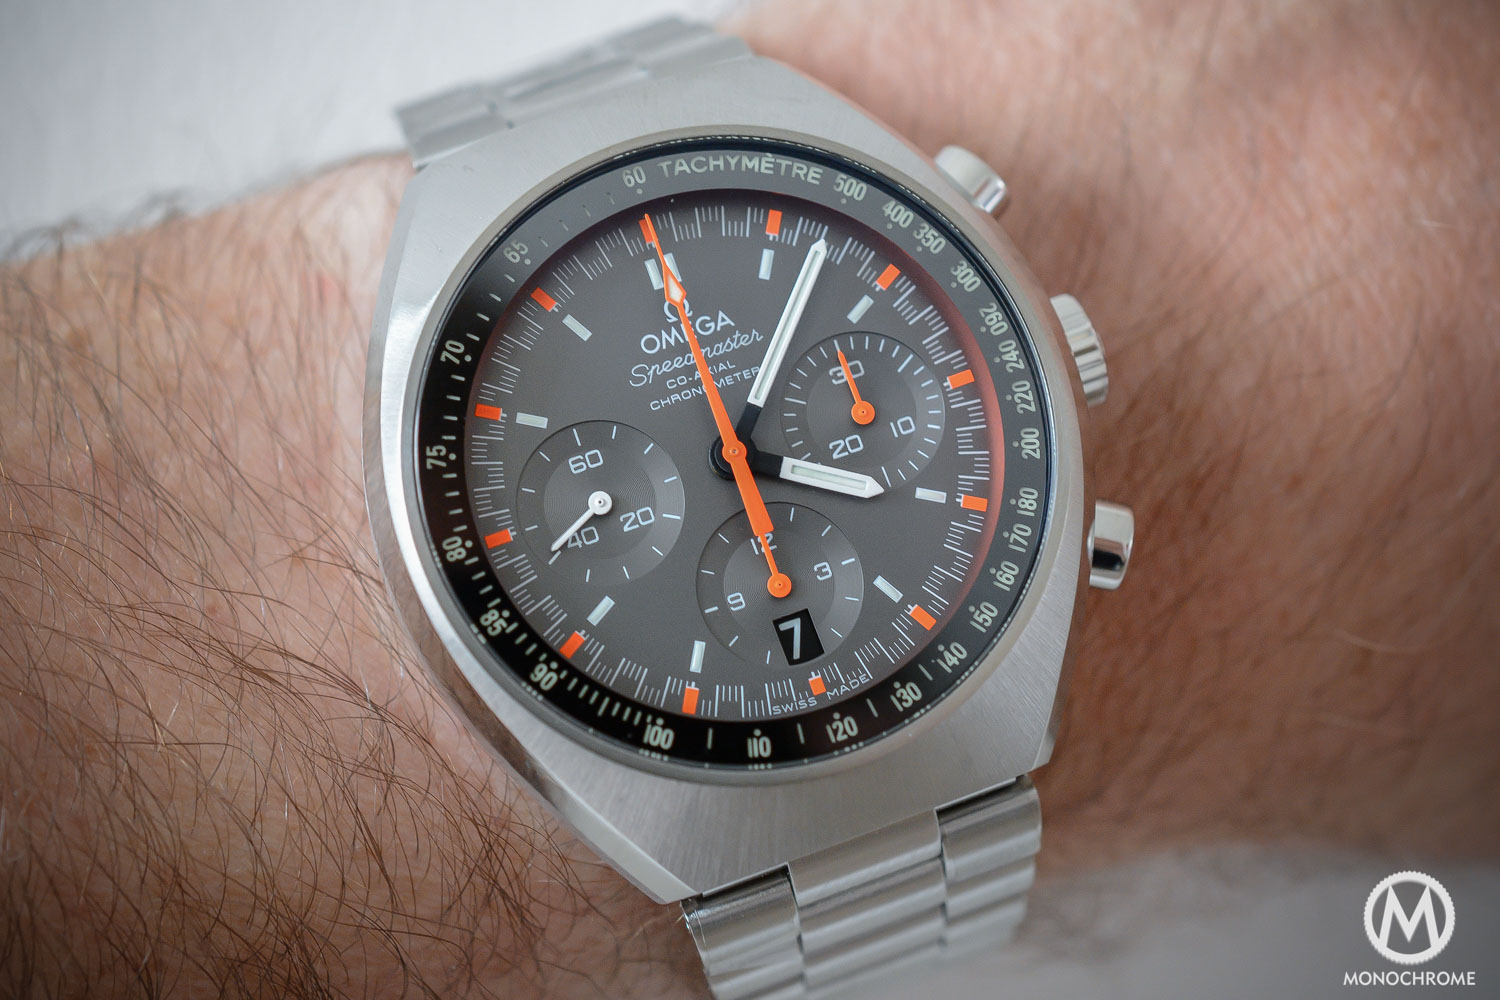 Omega Speedmaster Mark II Chronograph Co-Axial - Hands-on